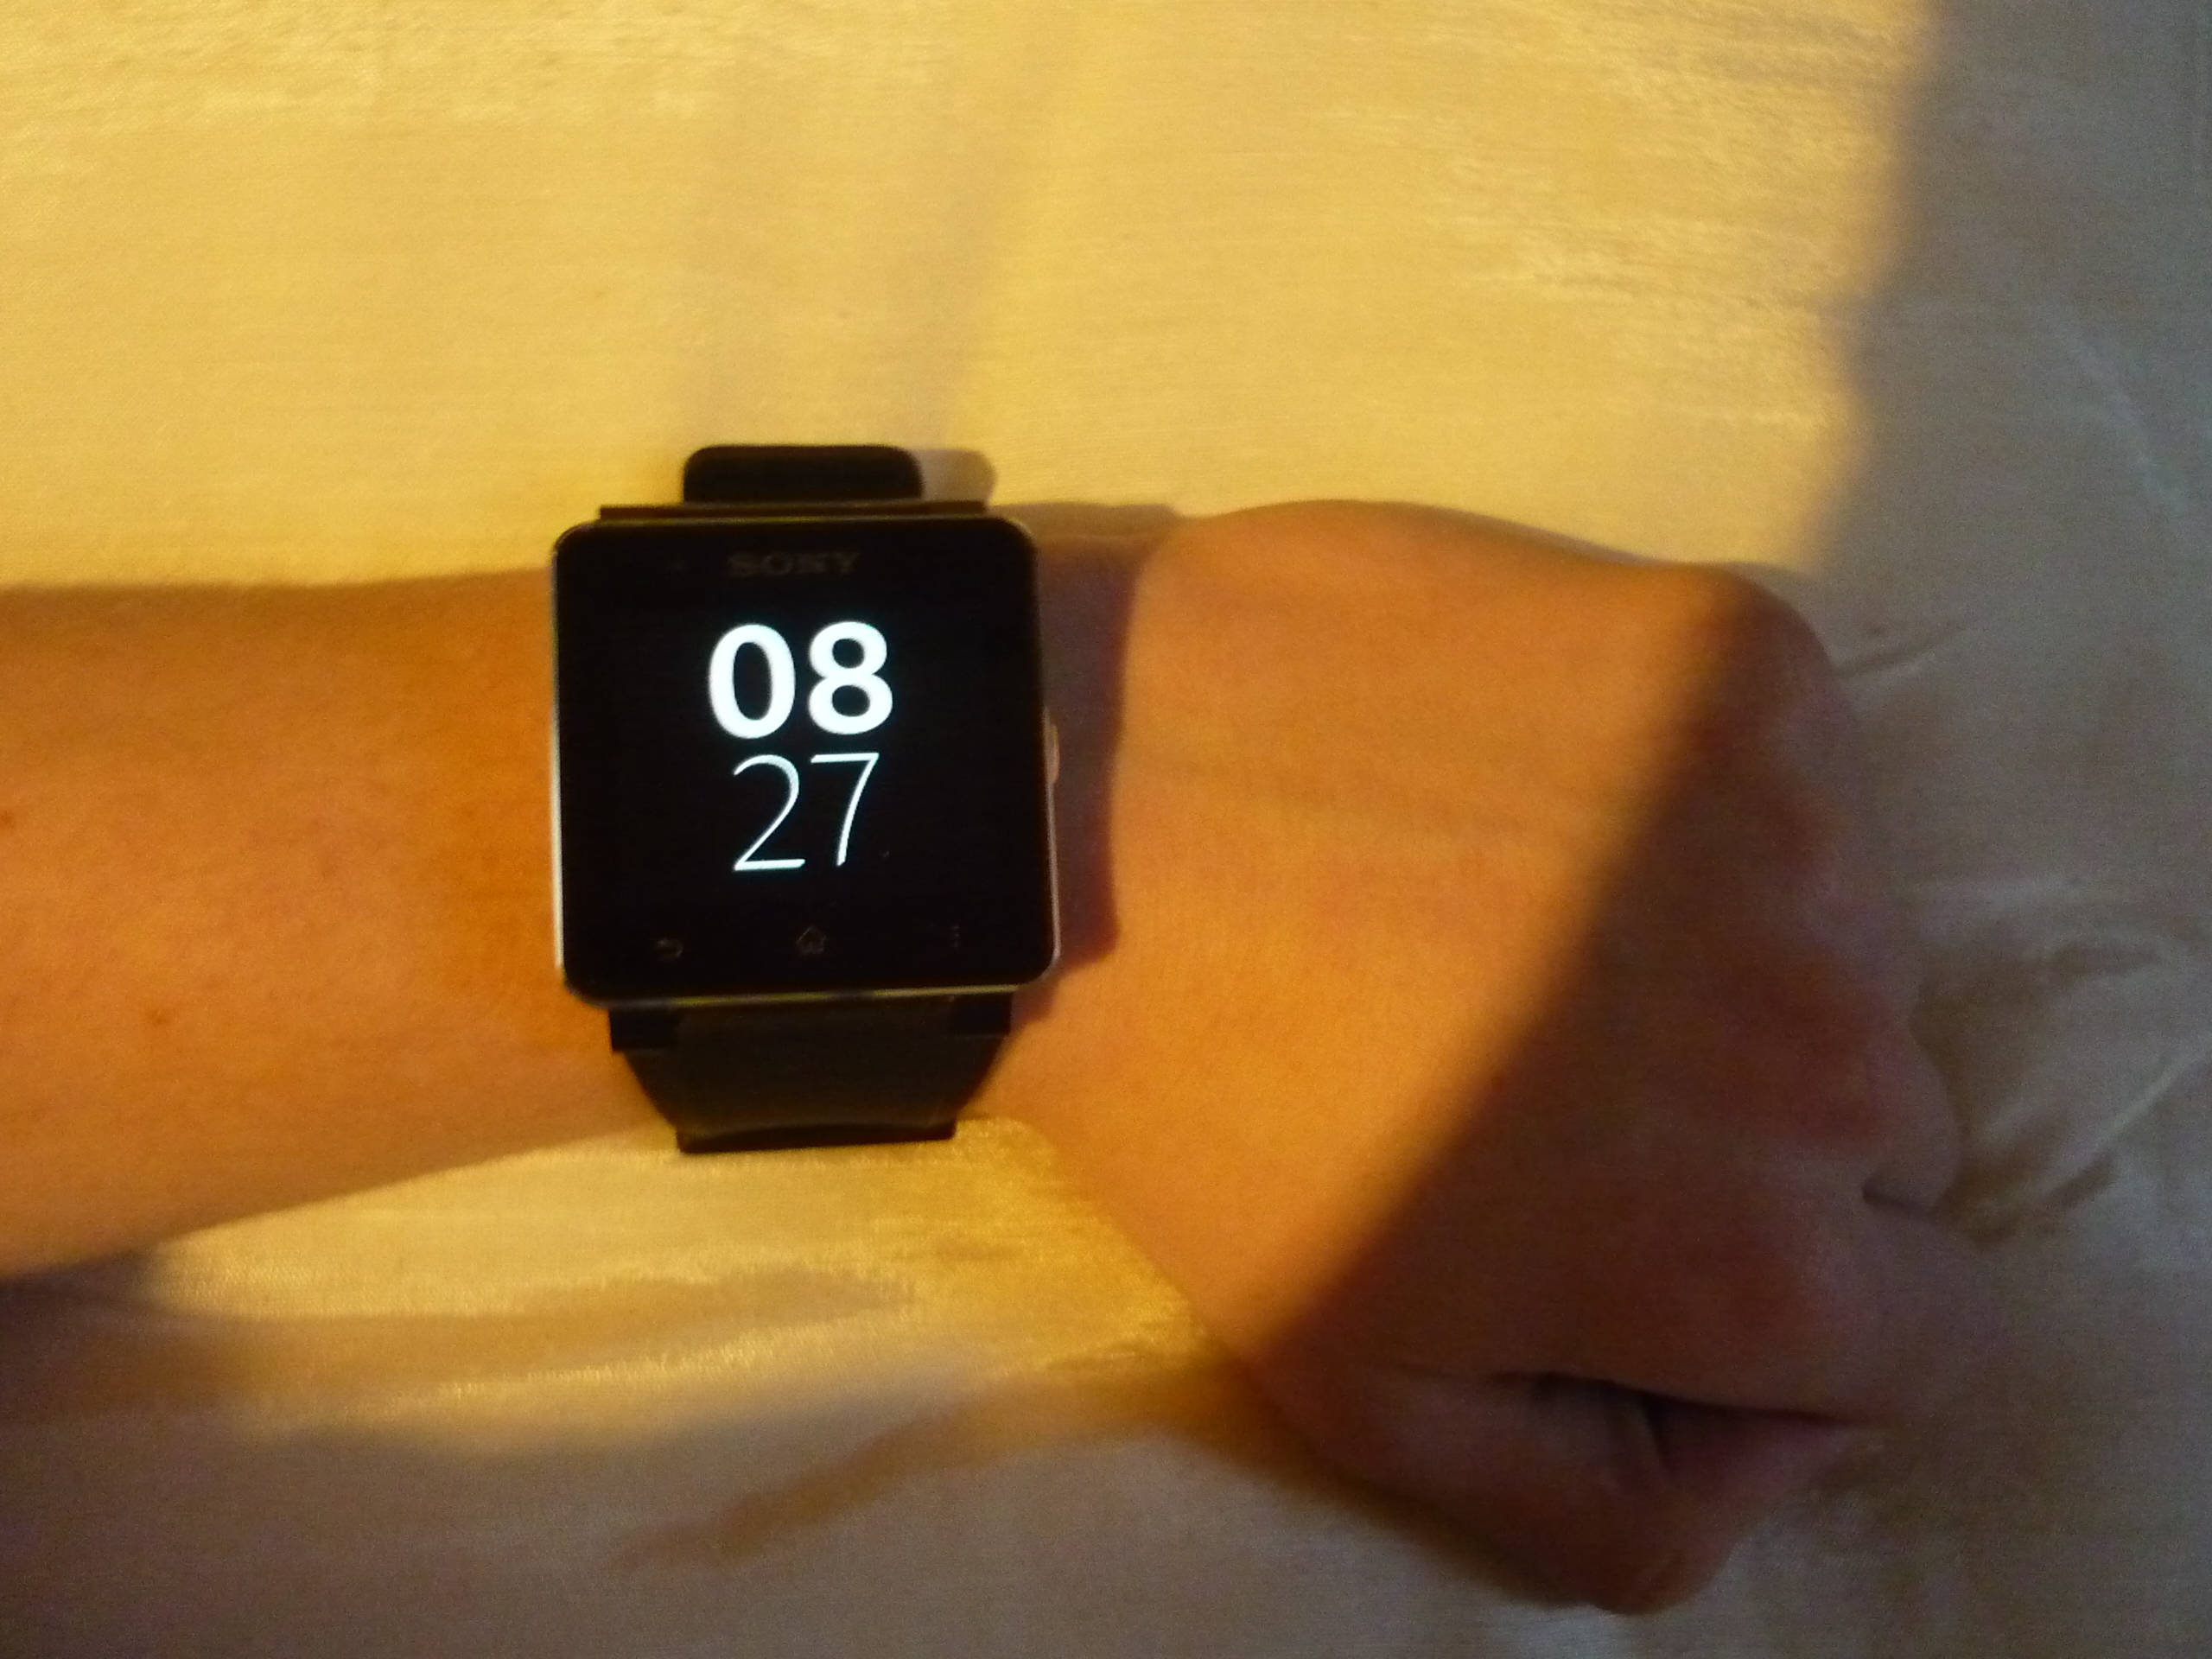 Sony smartwatch on a wrist.